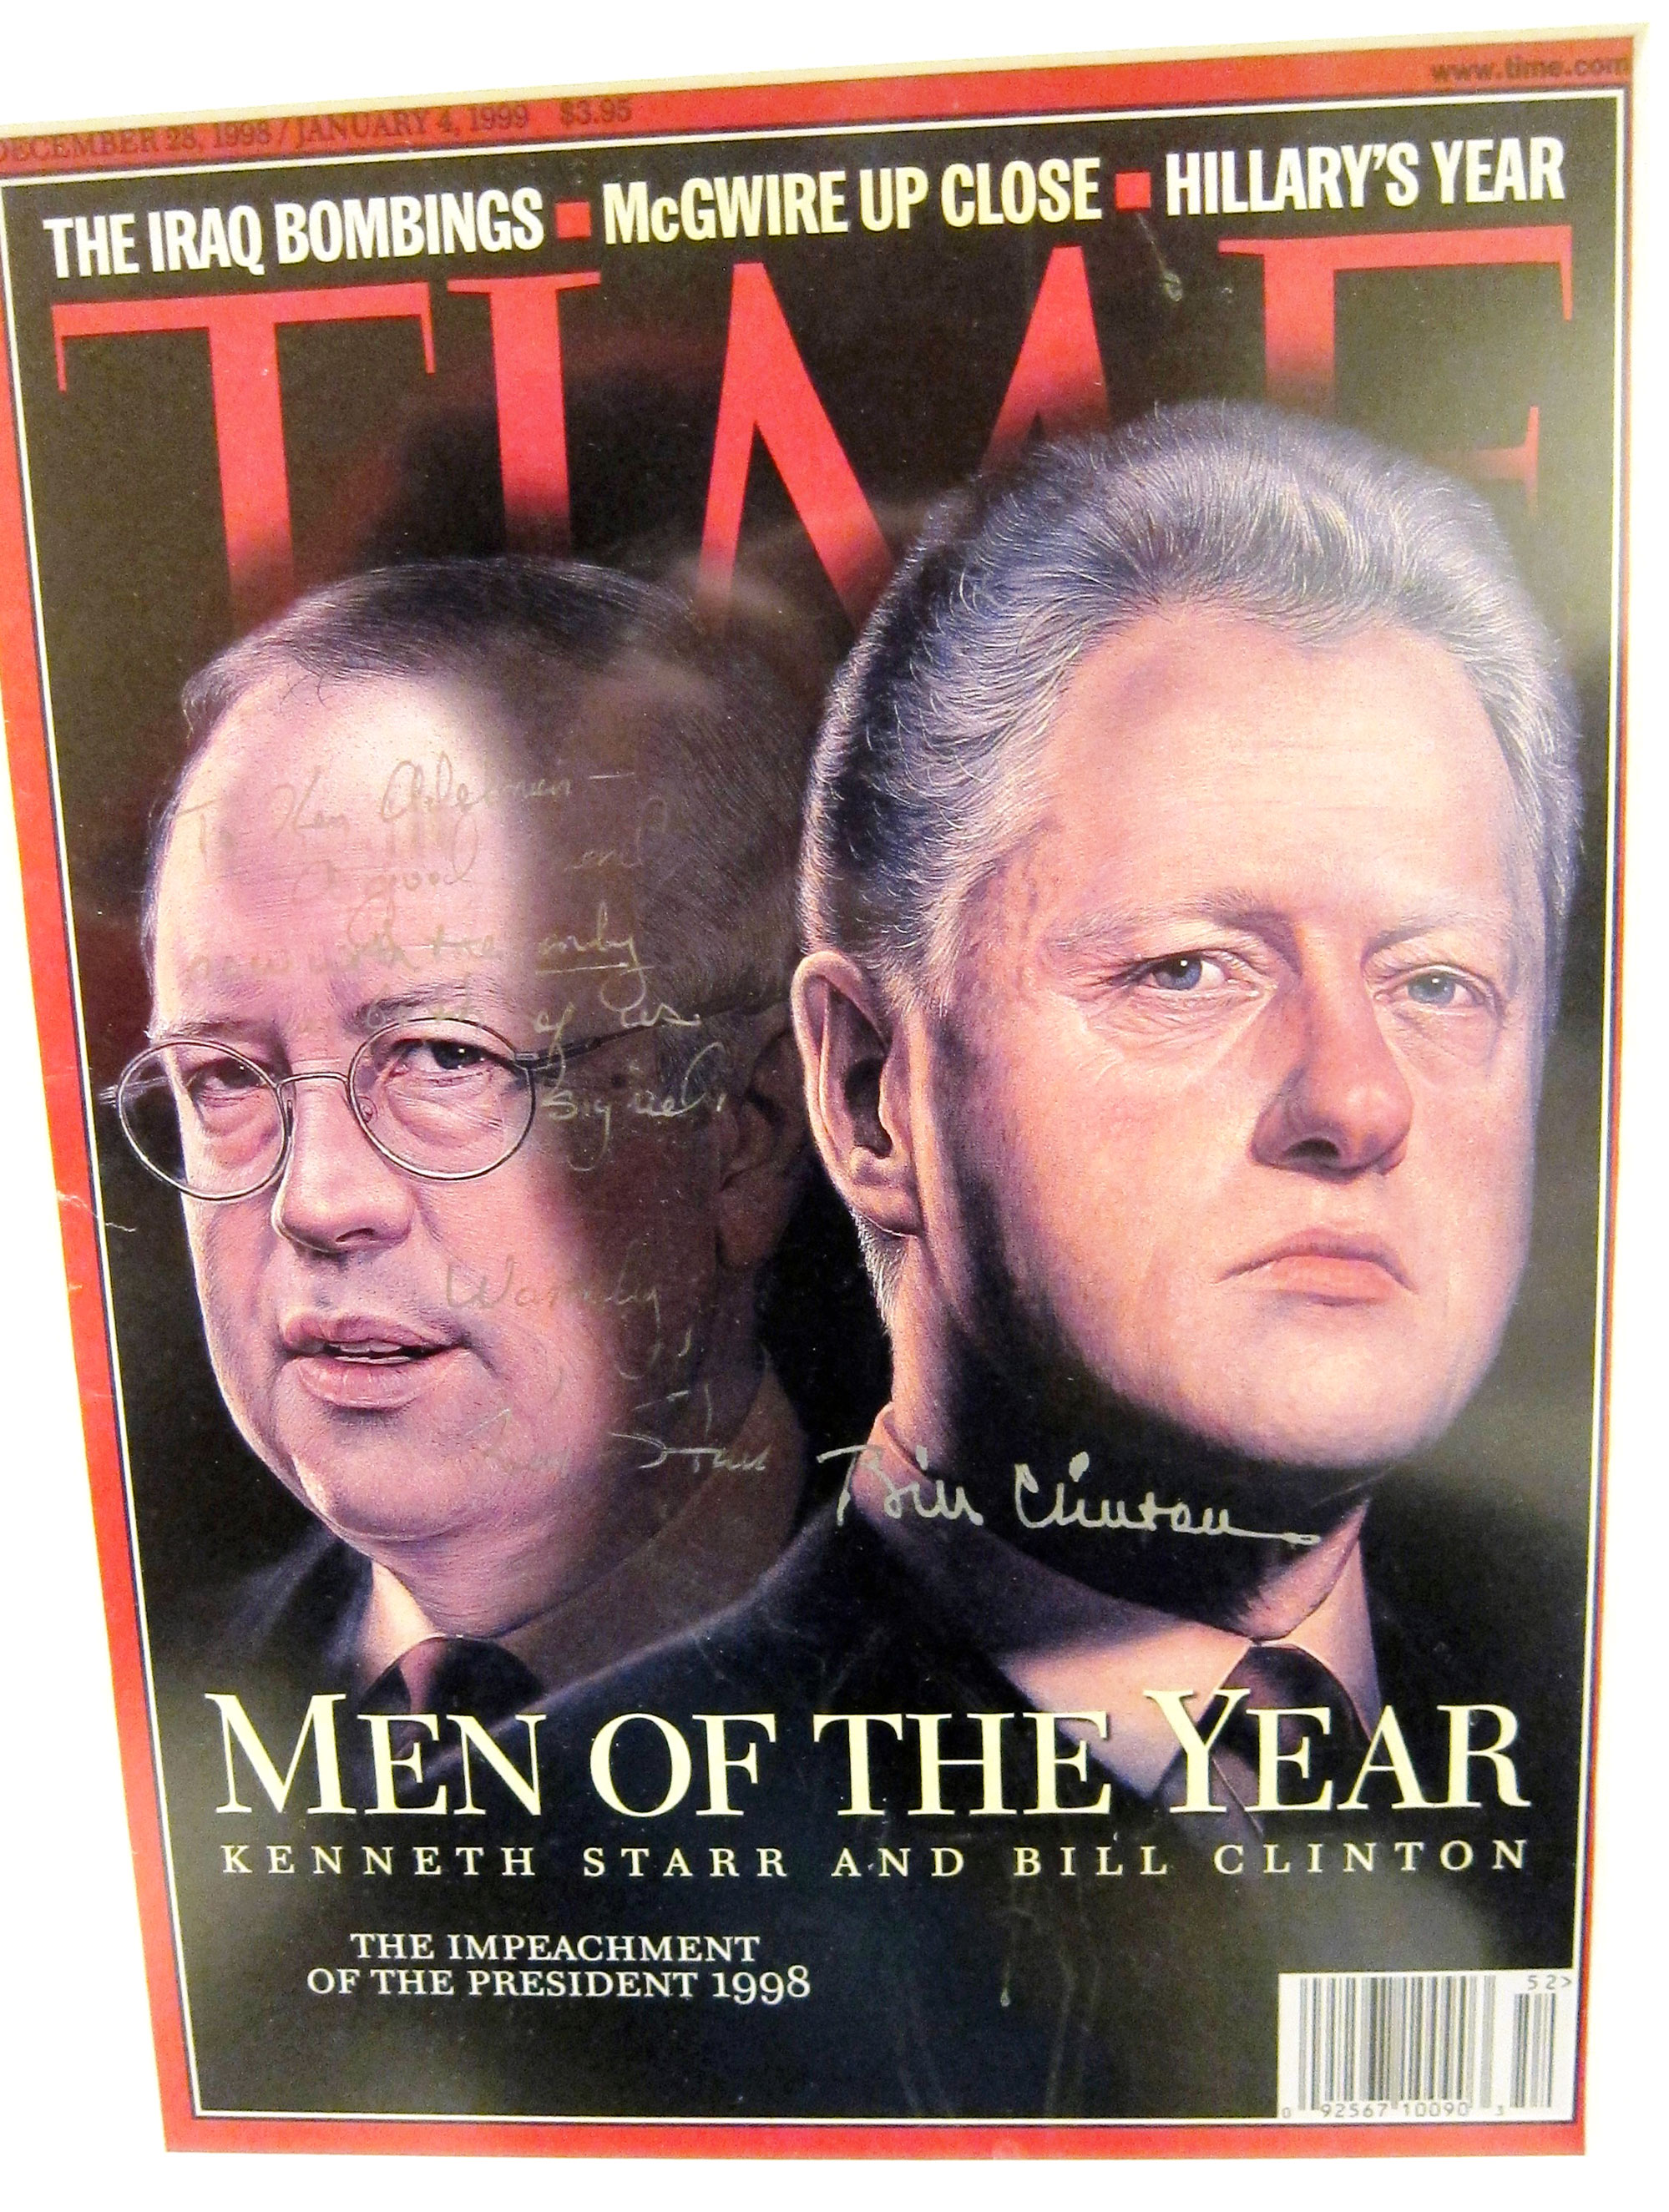 A signed copy of the 1998 TIME Men of the Year cover from Ken Adelman's collection